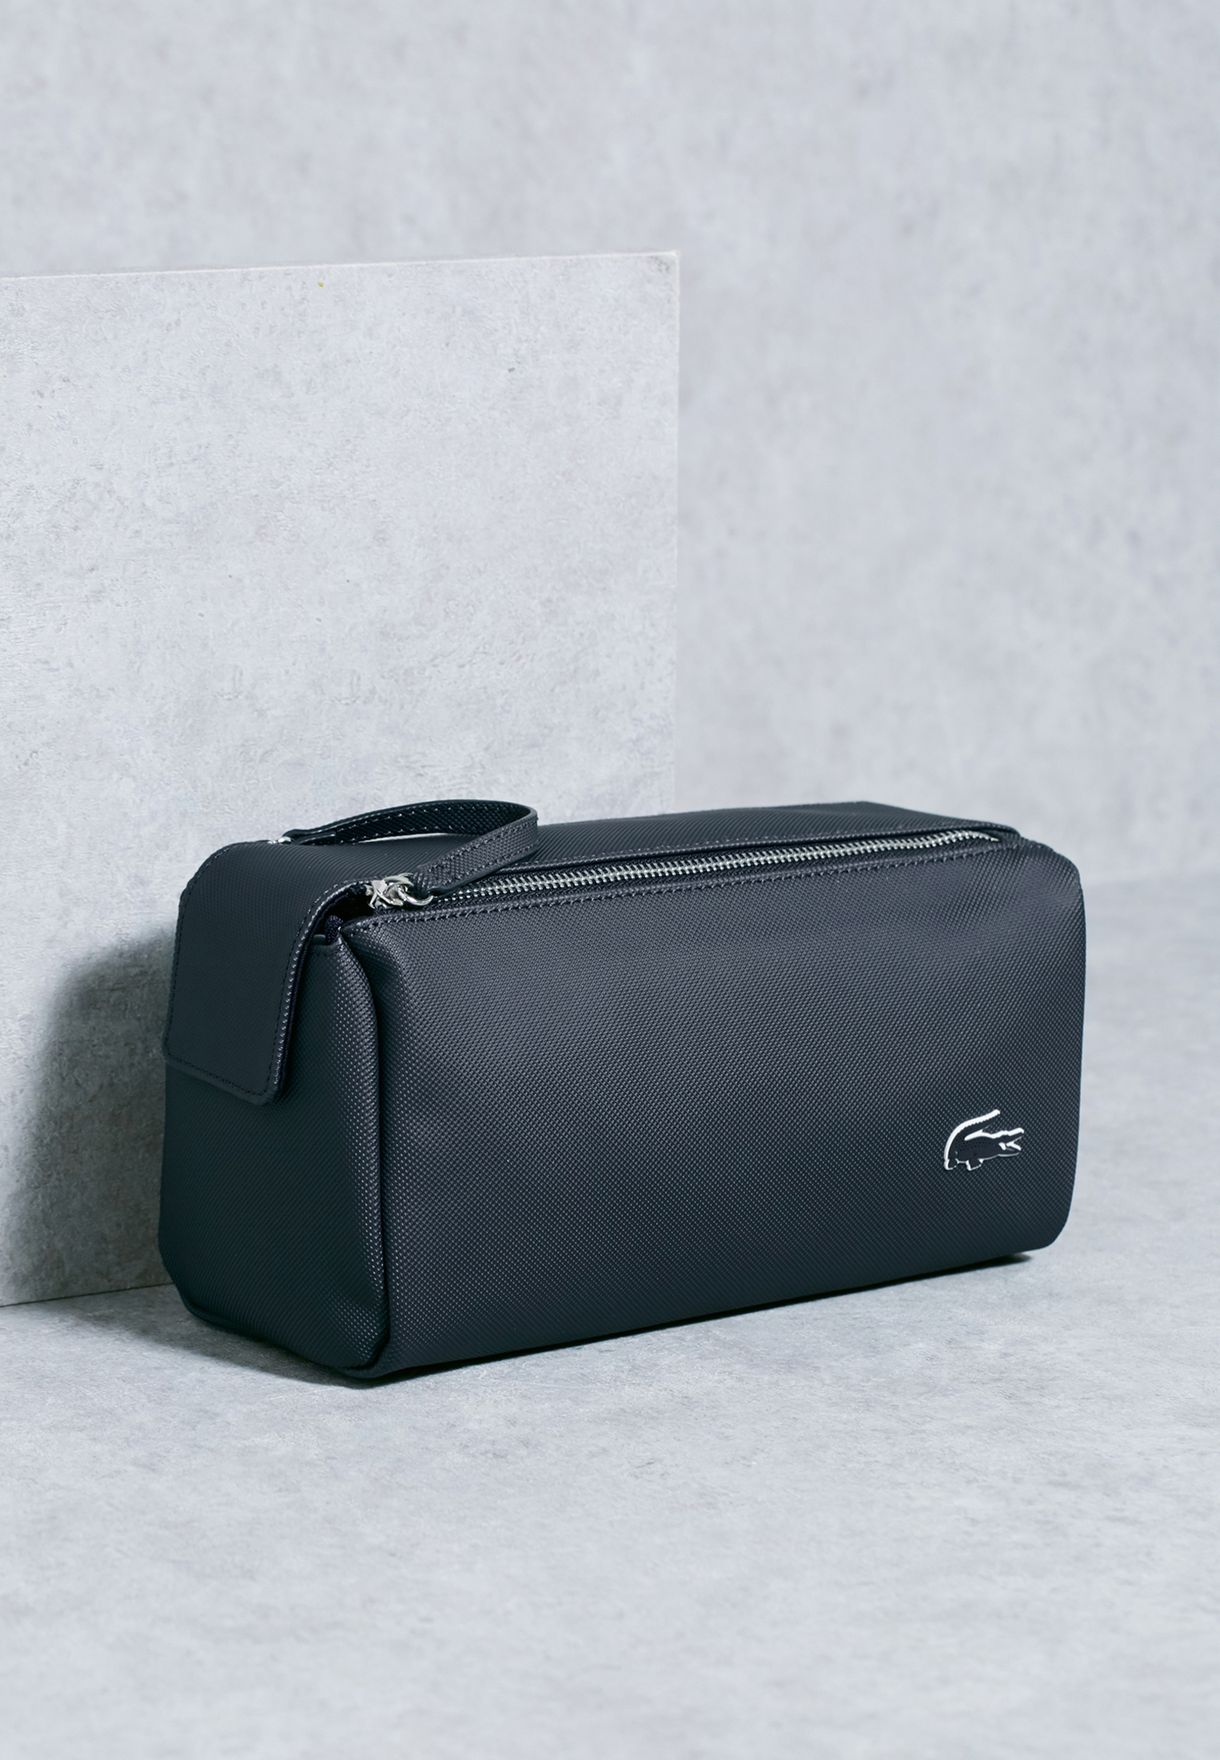 travel bag Toiletries Bag Lacoste Wash Bag in Navy Blue